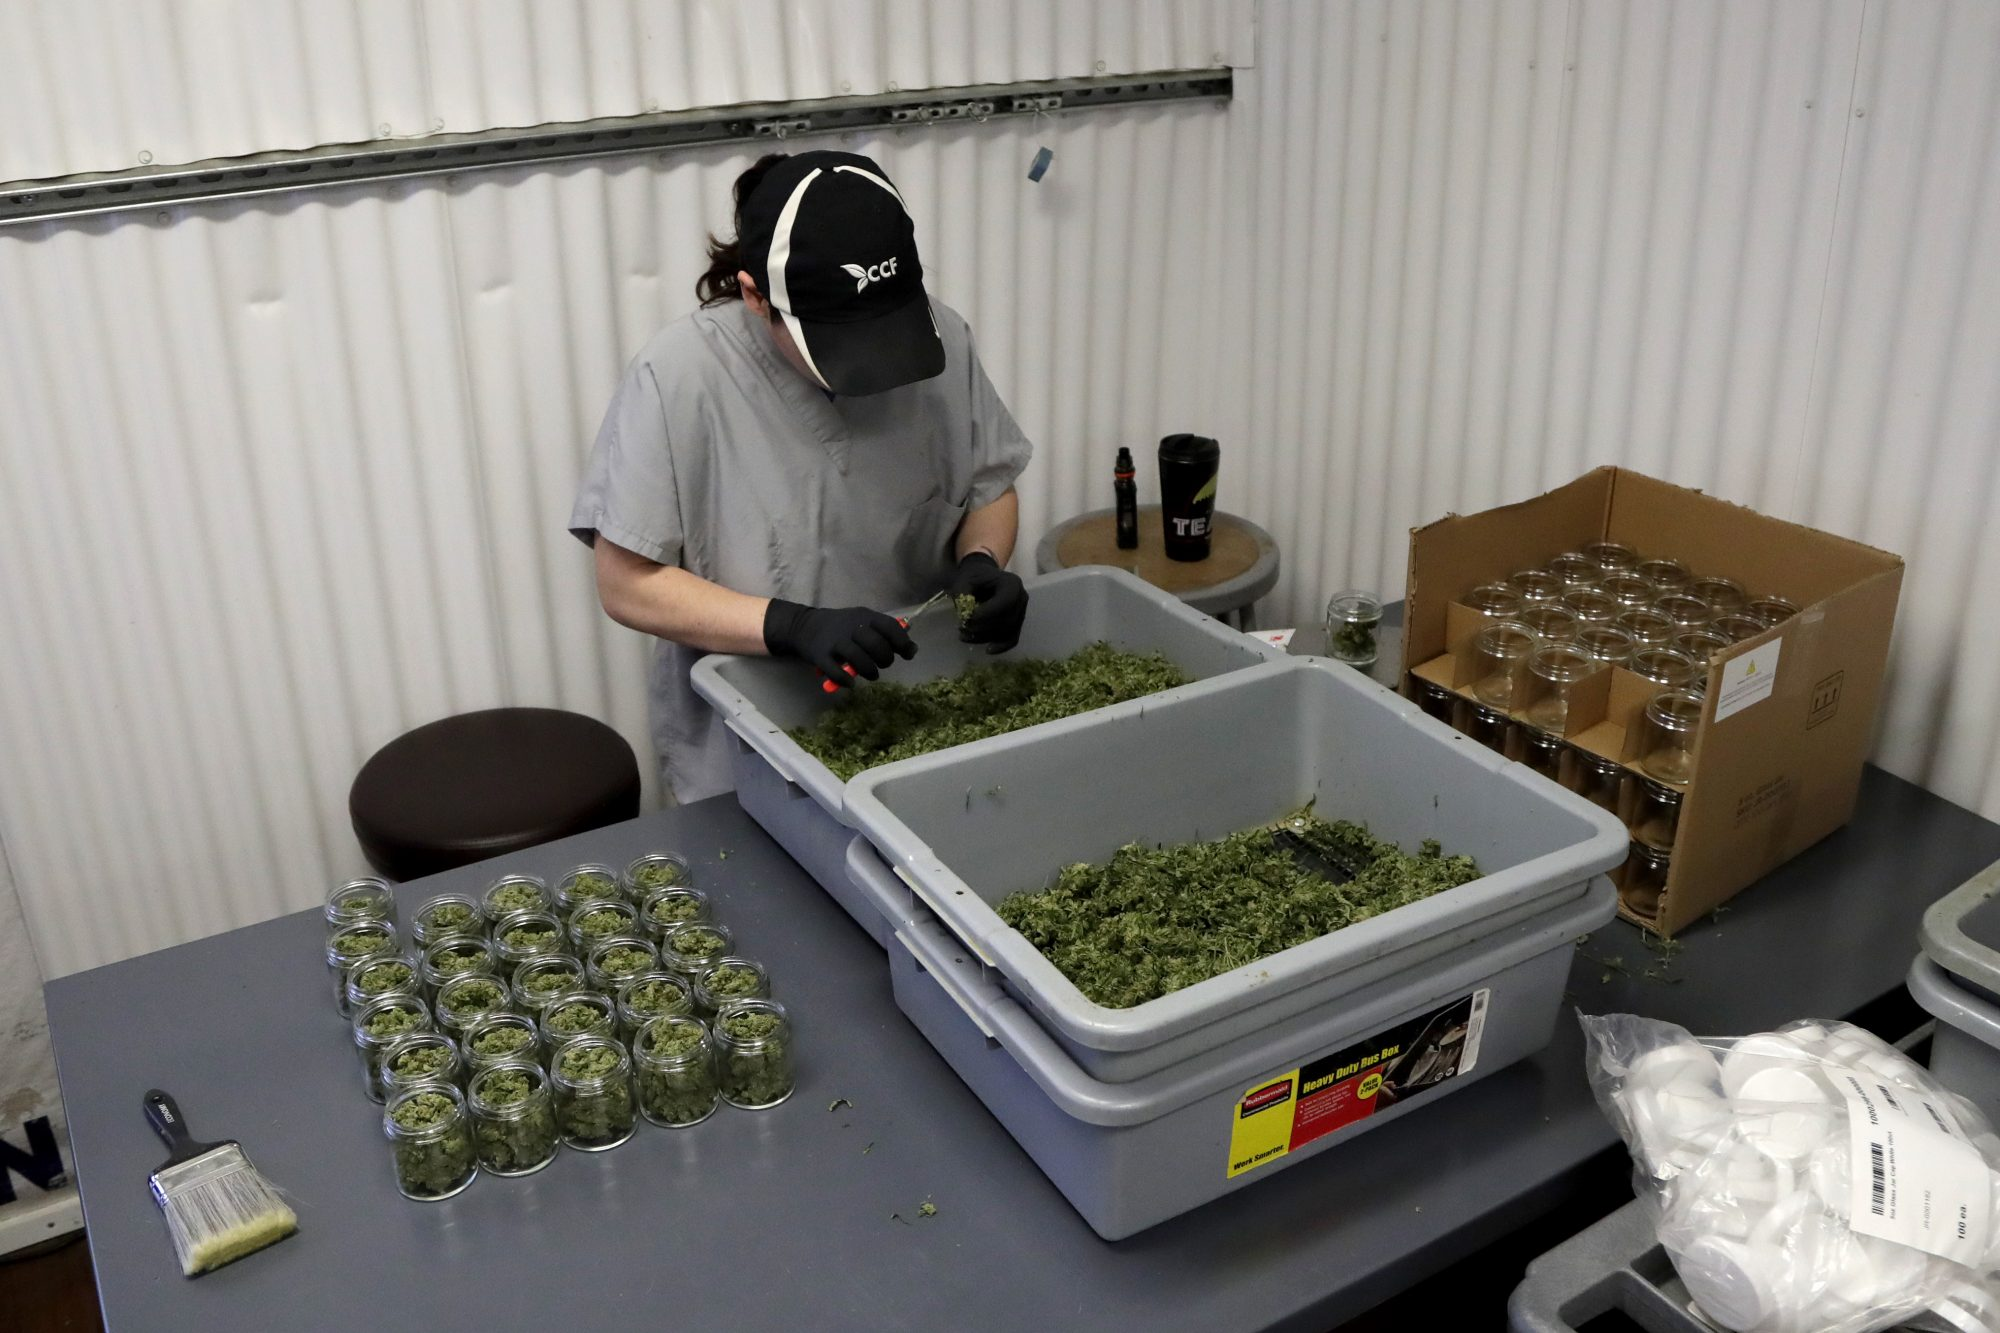 University of the Sciences launches MBA in medical cannabis, said to be first of its kind